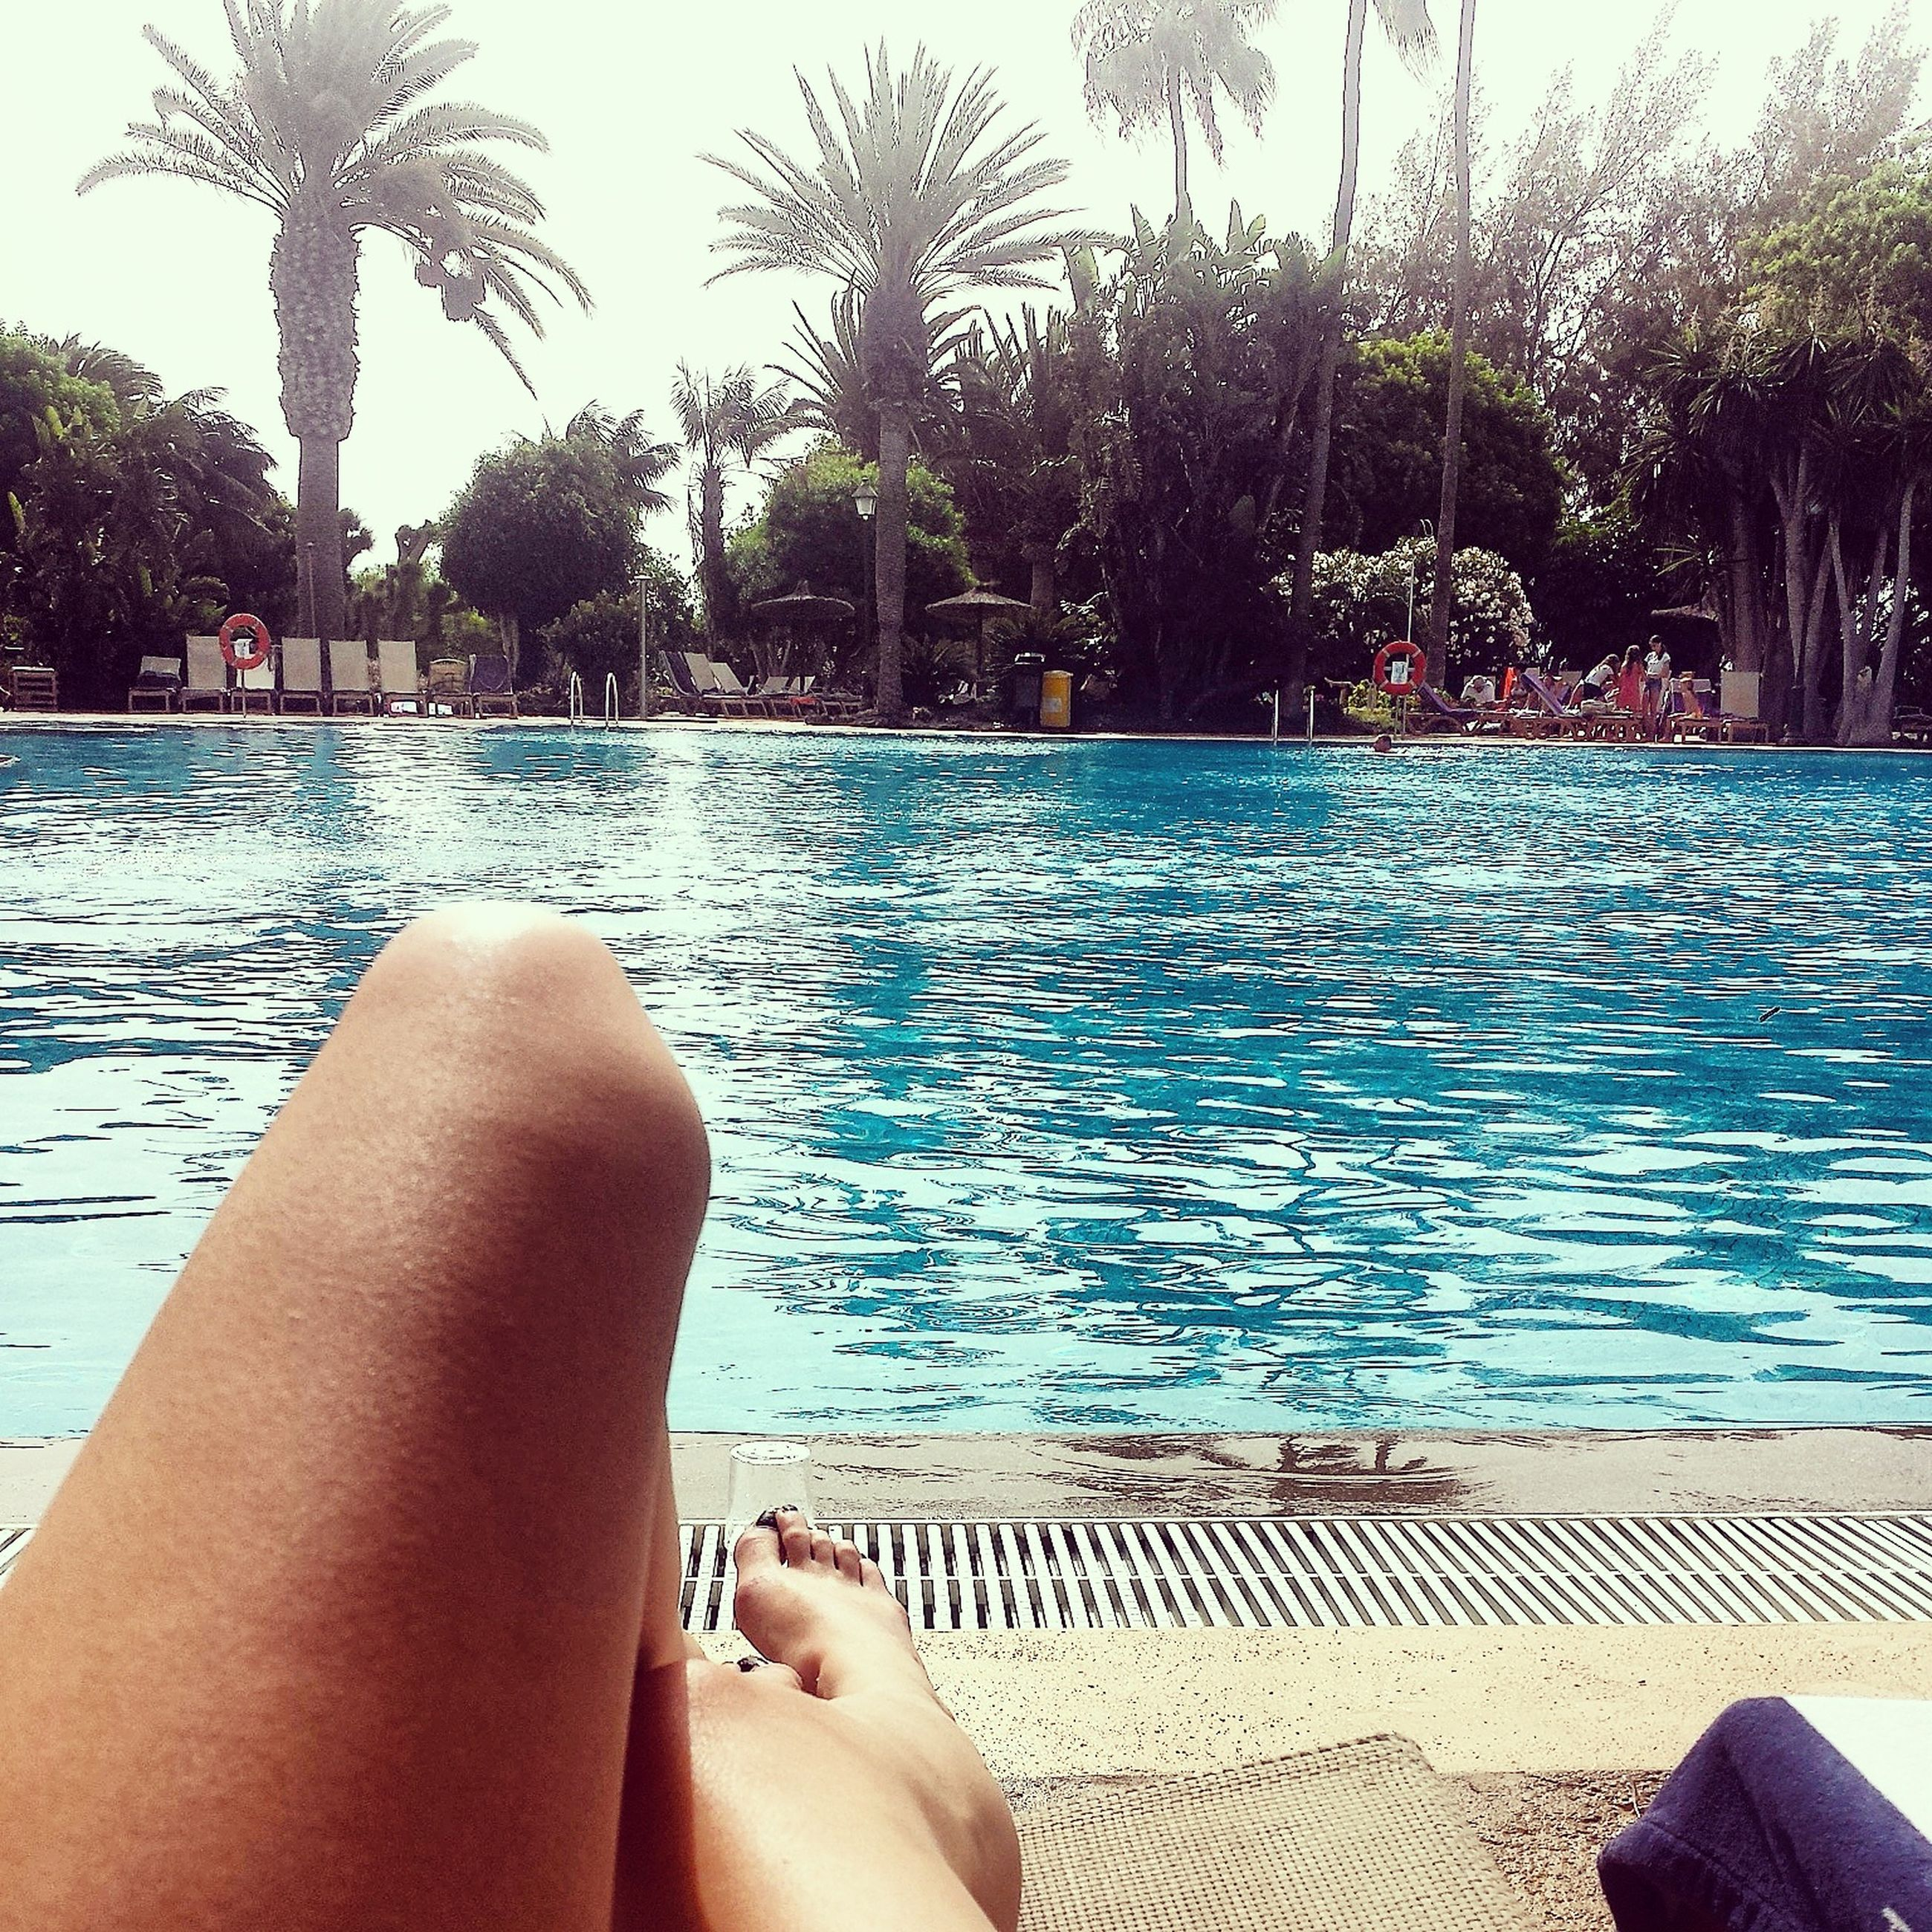 personal perspective, low section, person, water, part of, barefoot, lifestyles, leisure activity, human foot, relaxation, swimming pool, tree, legs crossed at ankle, cropped, relaxing